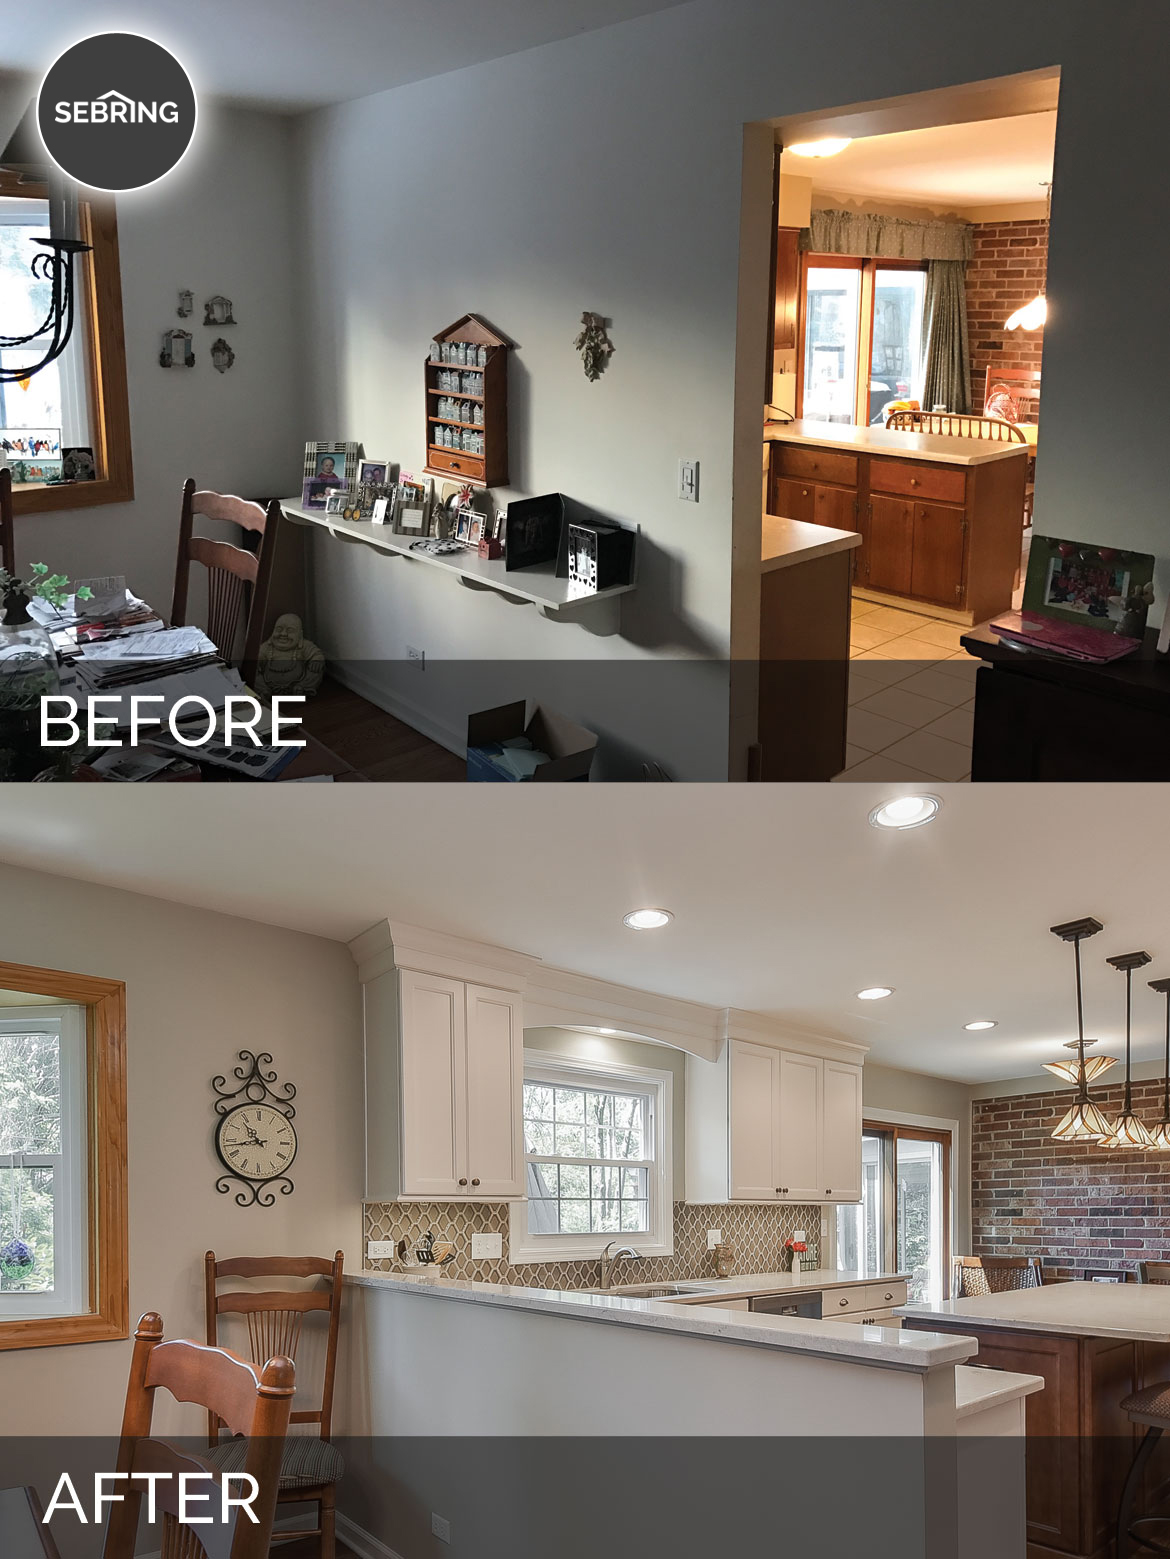 Scott & Ann's Kitchen Before & After Pictures